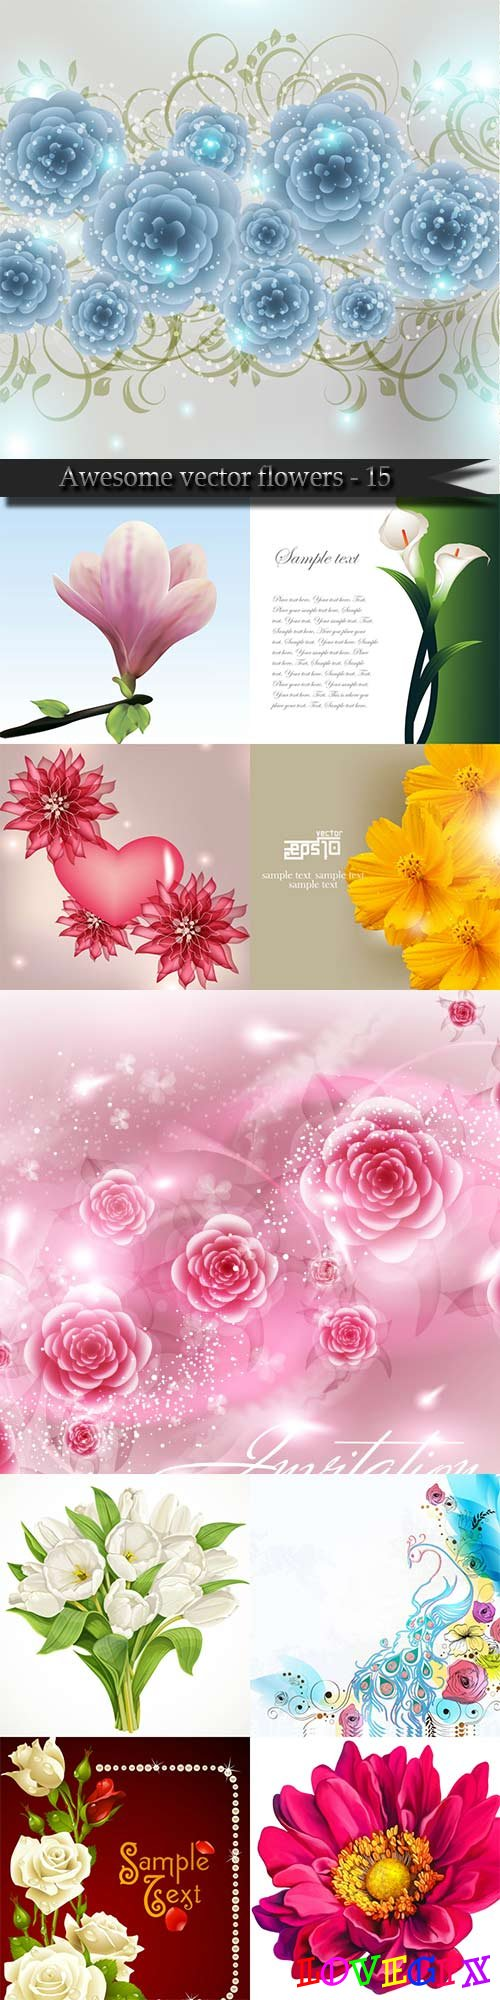 Awesome vector flowers - 15